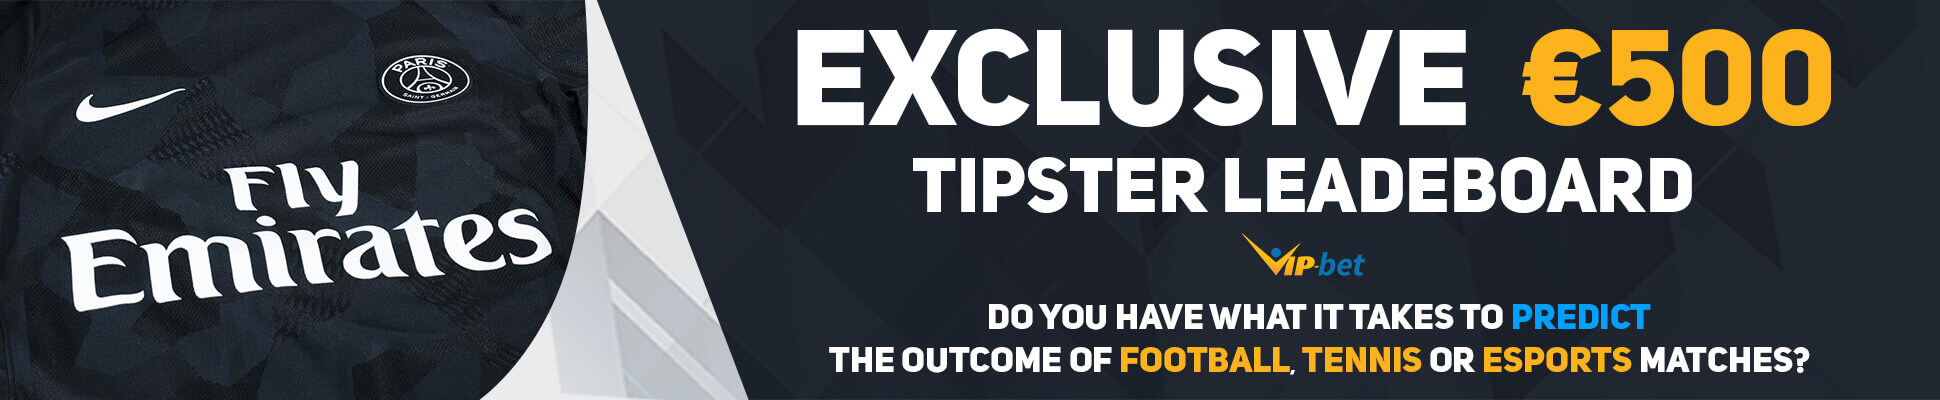 VIP-bet tipster leaderboard